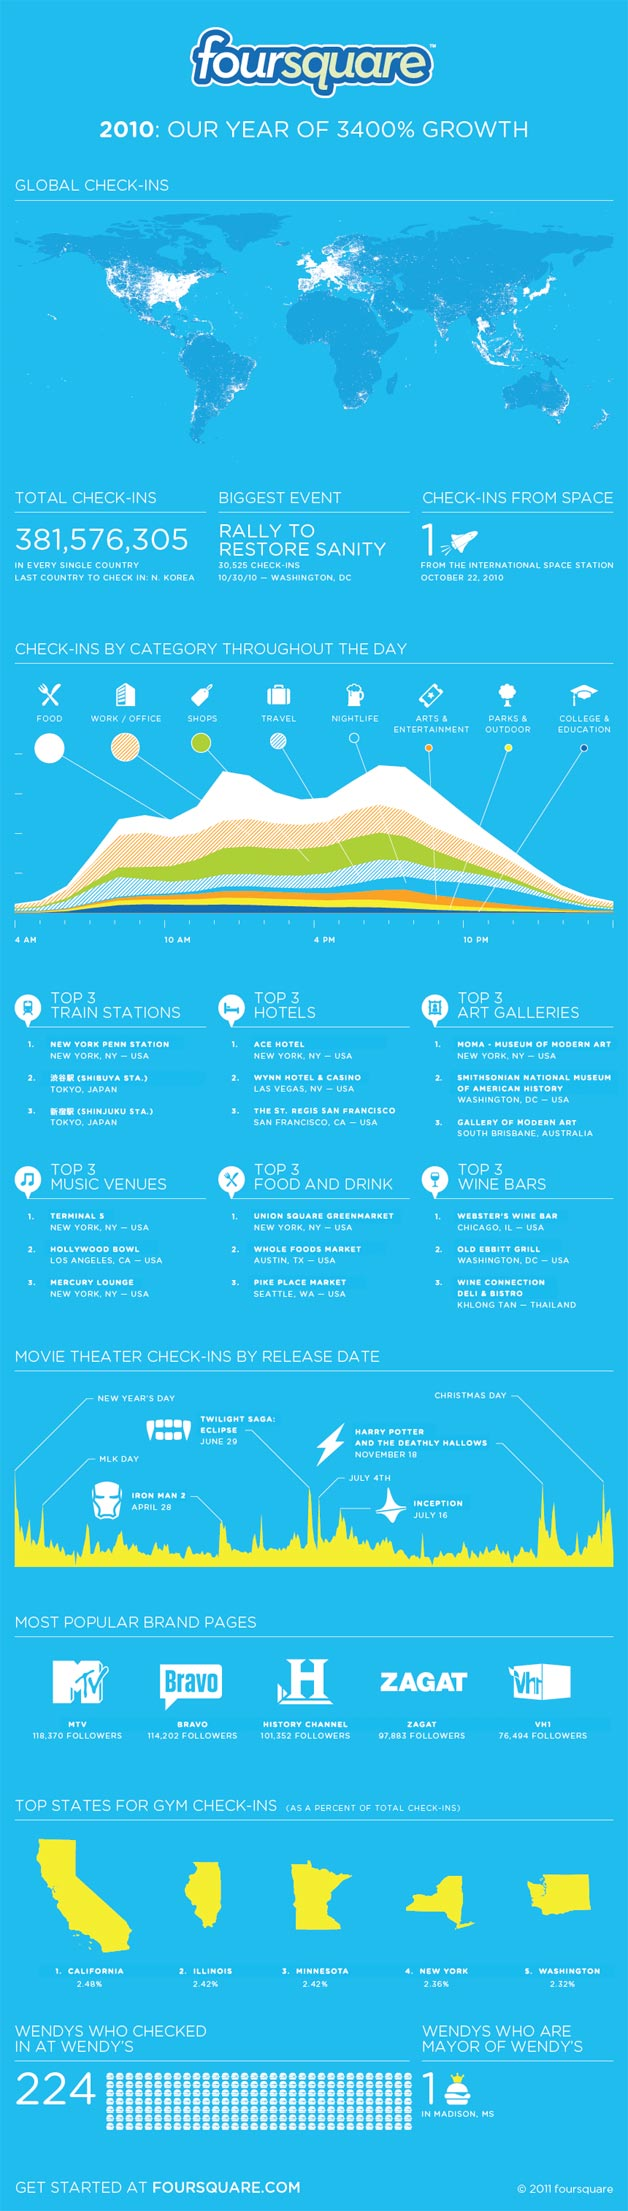 Foursquare Growth Illustrated